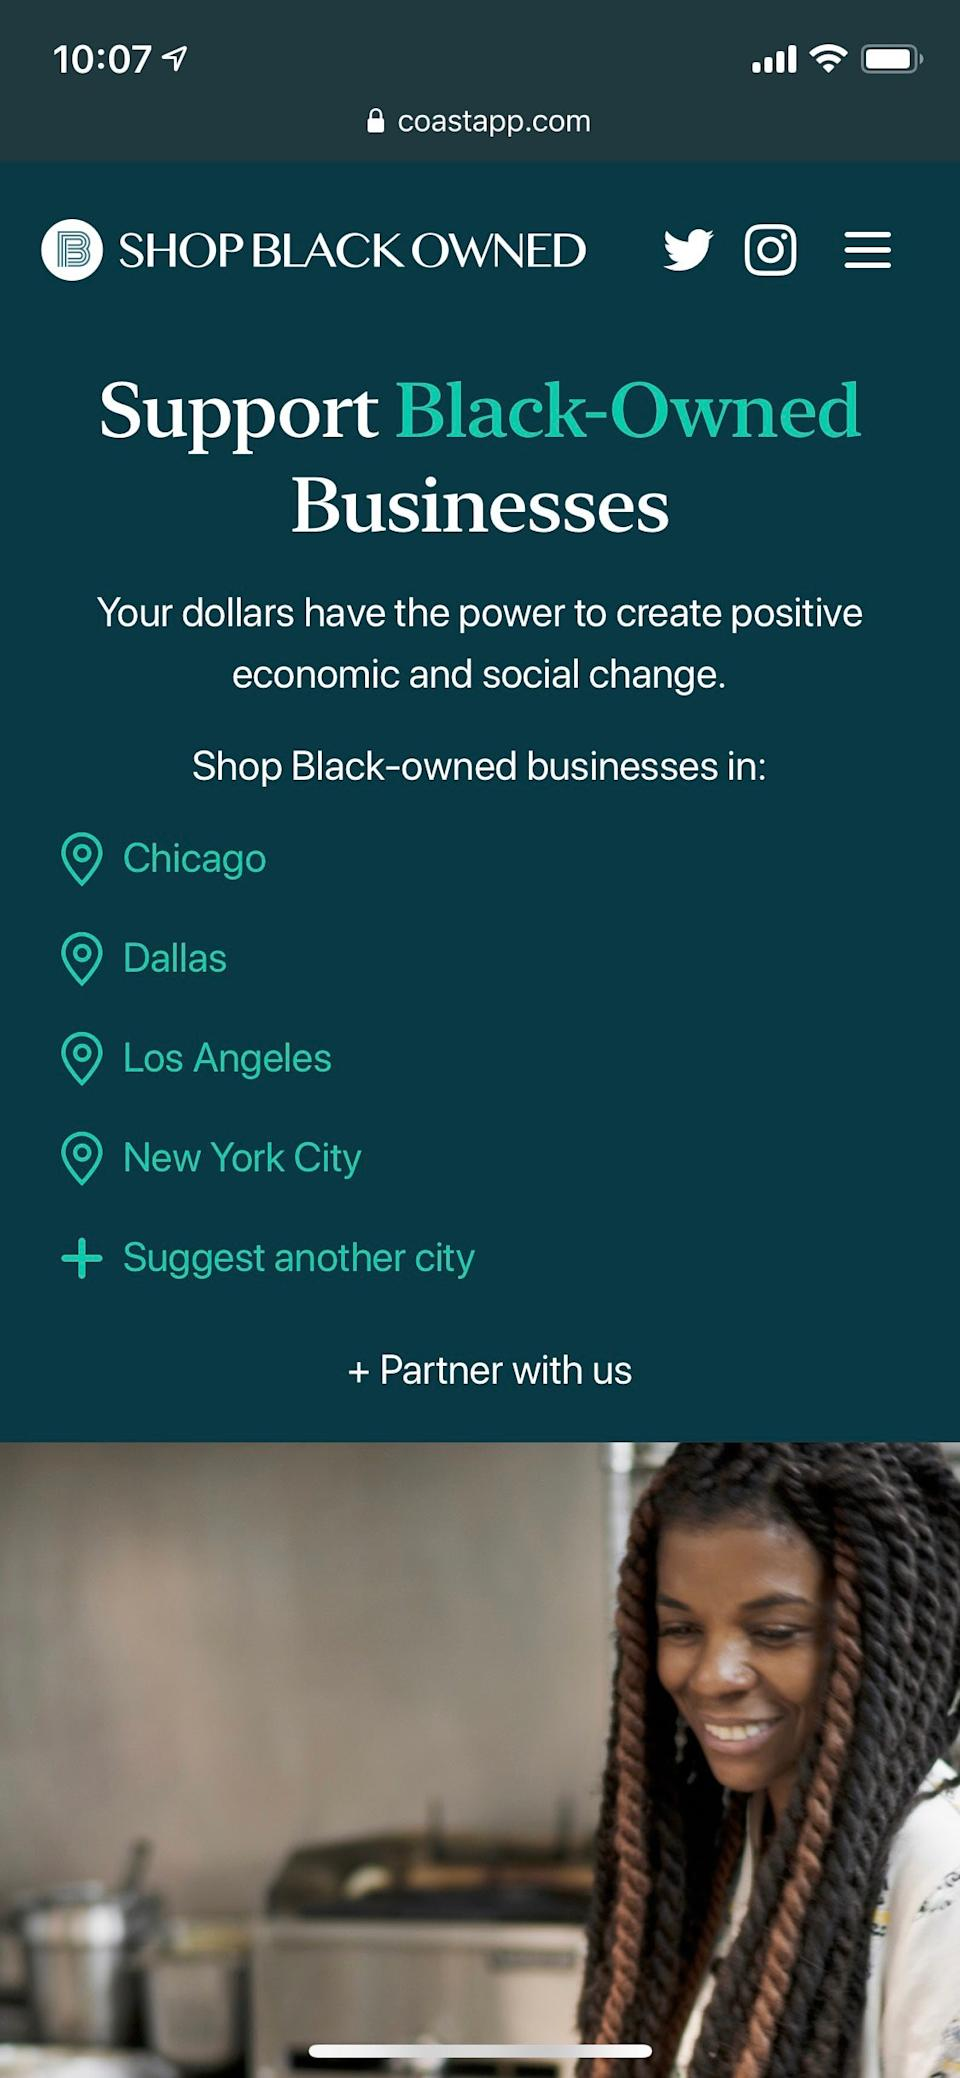 """<h3>Shop Black Owned</h3><br>If you're ing New York, Los Angeles, Chicago, or Dallas, check out <a href=""""https://coastapp.com/shopblackowned/"""" rel=""""nofollow noopener"""" target=""""_blank"""" data-ylk=""""slk:Shop Black Owned"""" class=""""link rapid-noclick-resp"""">Shop Black Owned</a>. This newly launched open-source tool was created by <a href=""""https://coastapp.com/"""" rel=""""nofollow noopener"""" target=""""_blank"""" data-ylk=""""slk:Coast"""" class=""""link rapid-noclick-resp"""">Coast</a> and Janet Gardner with the goal of providing wider visibility to Black-owned businesses and connecting consumer buying power to positive economic and social change. Right now, the tool features over 1,000 Black-owned businesses and will be launching in other cities soon."""